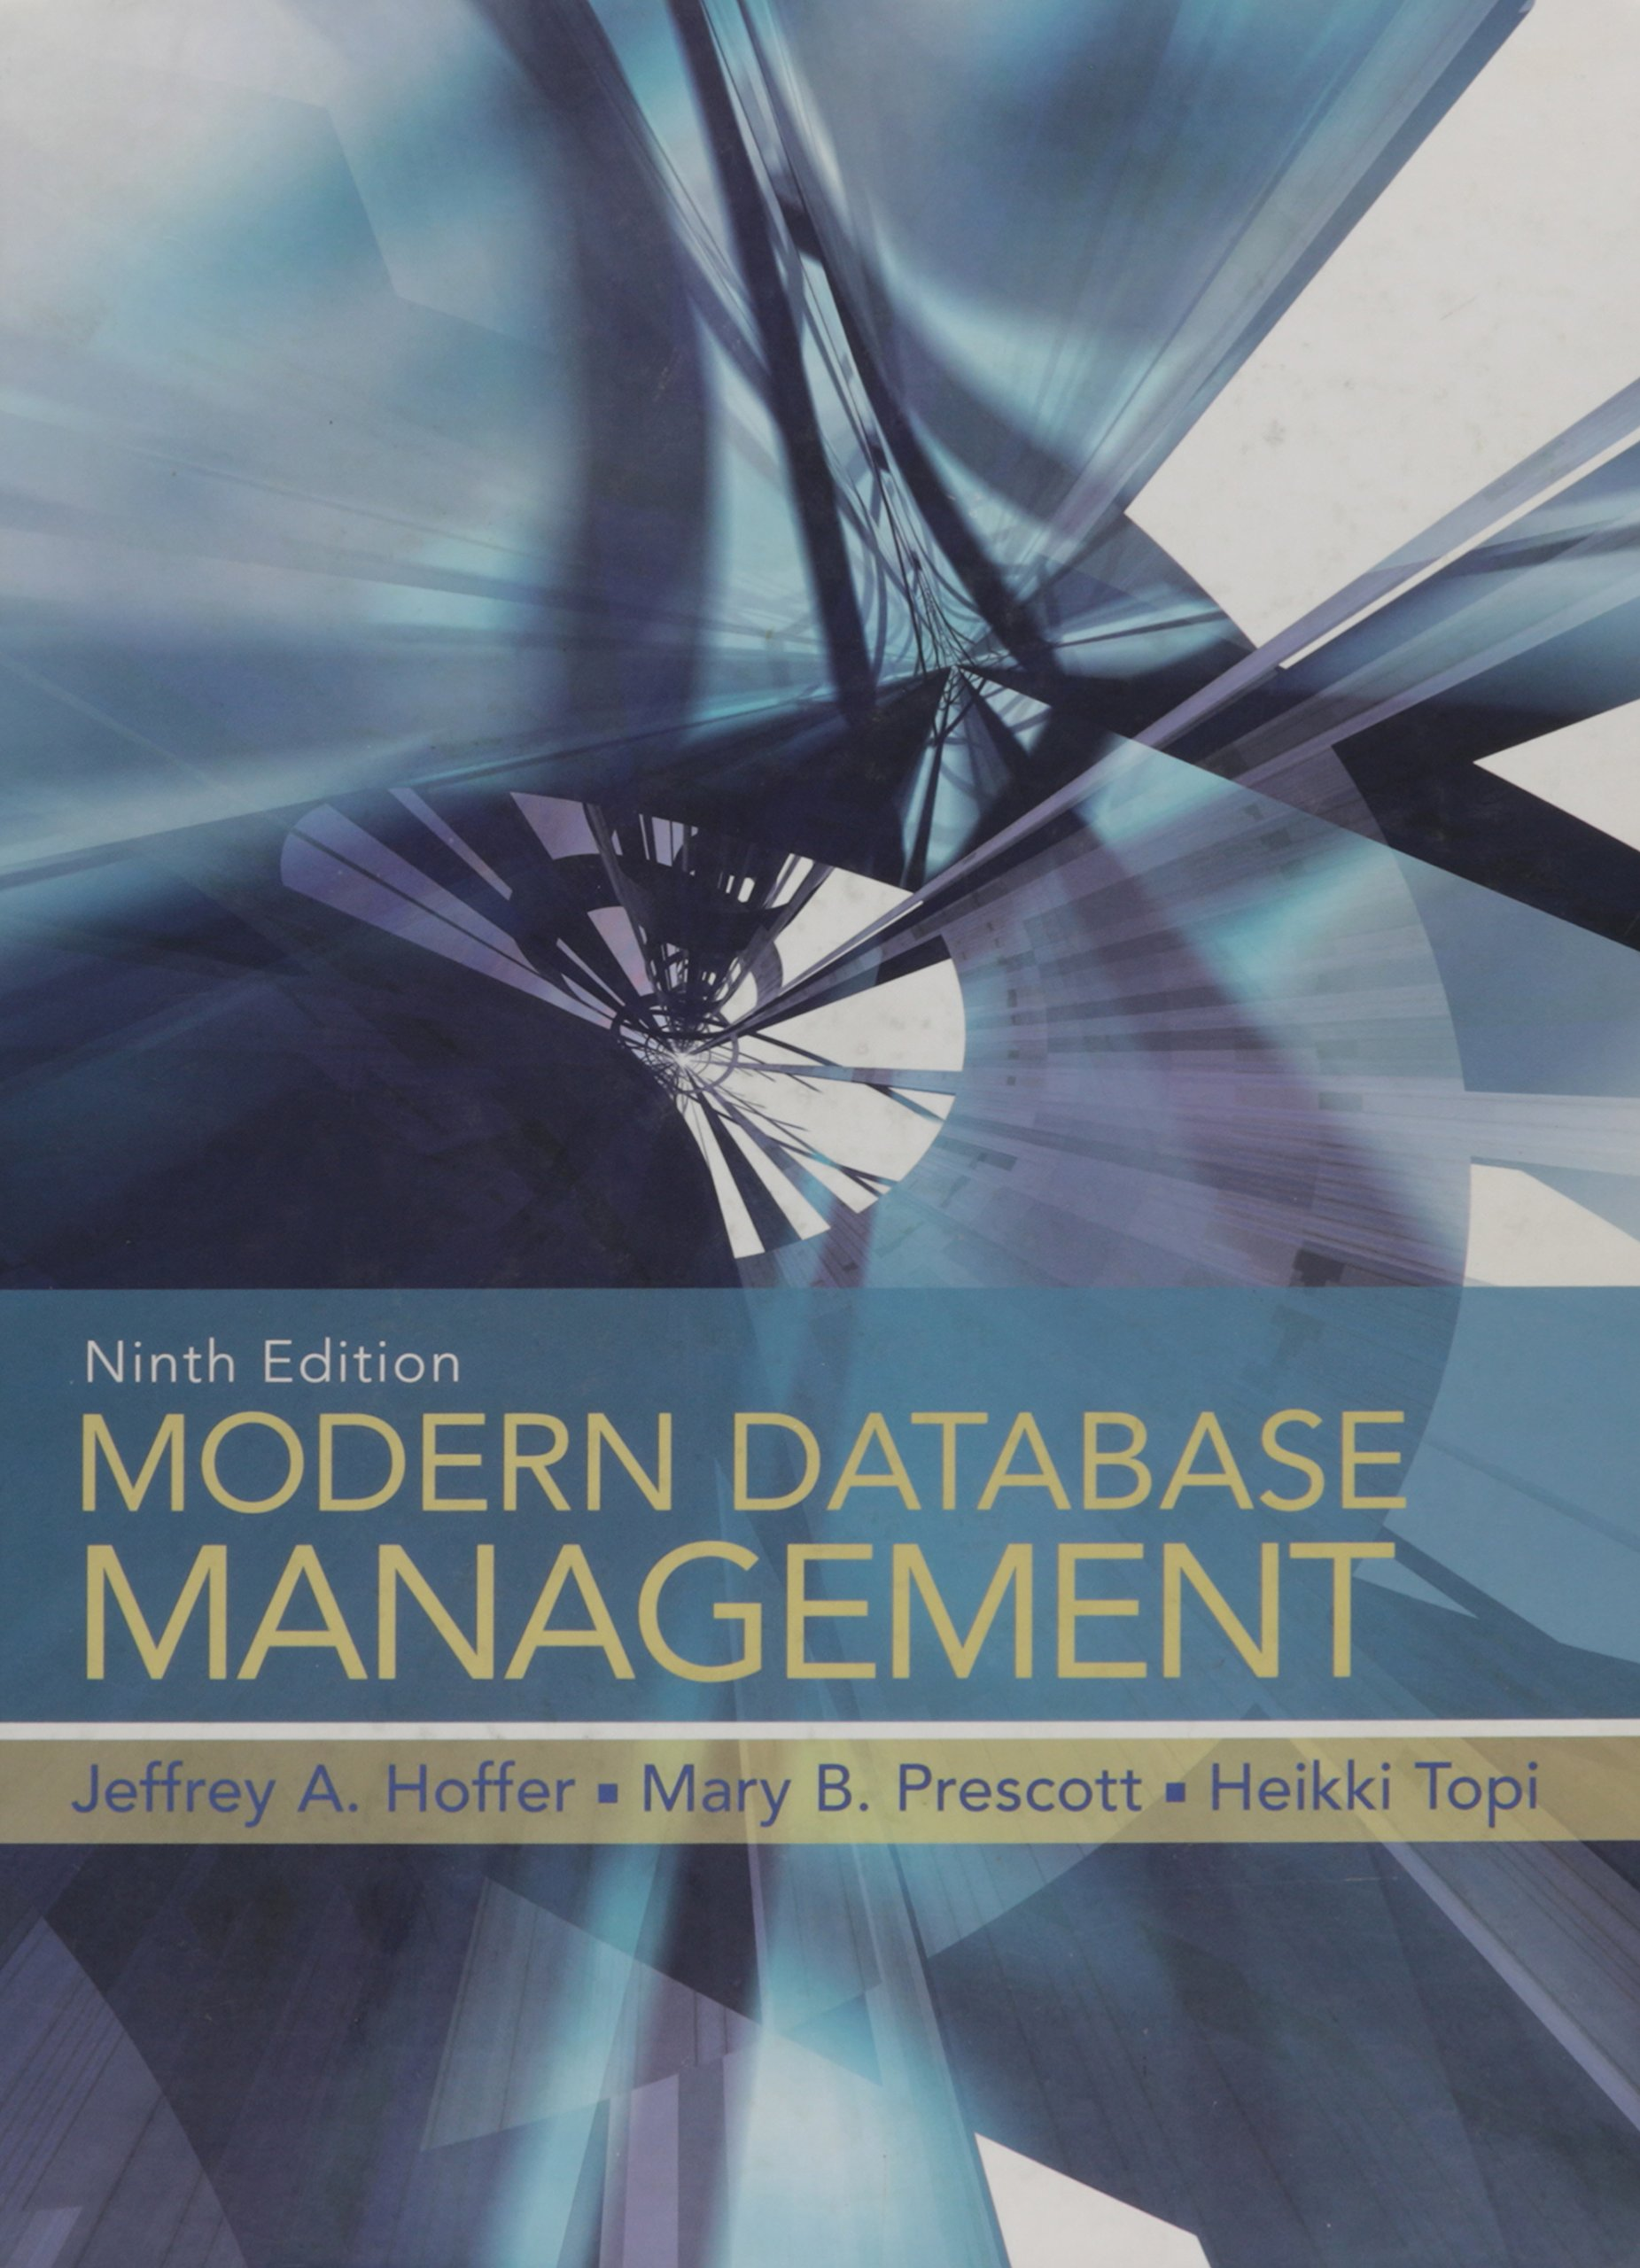 Download Modern Database Management 9th Edition (Book Only) pdf